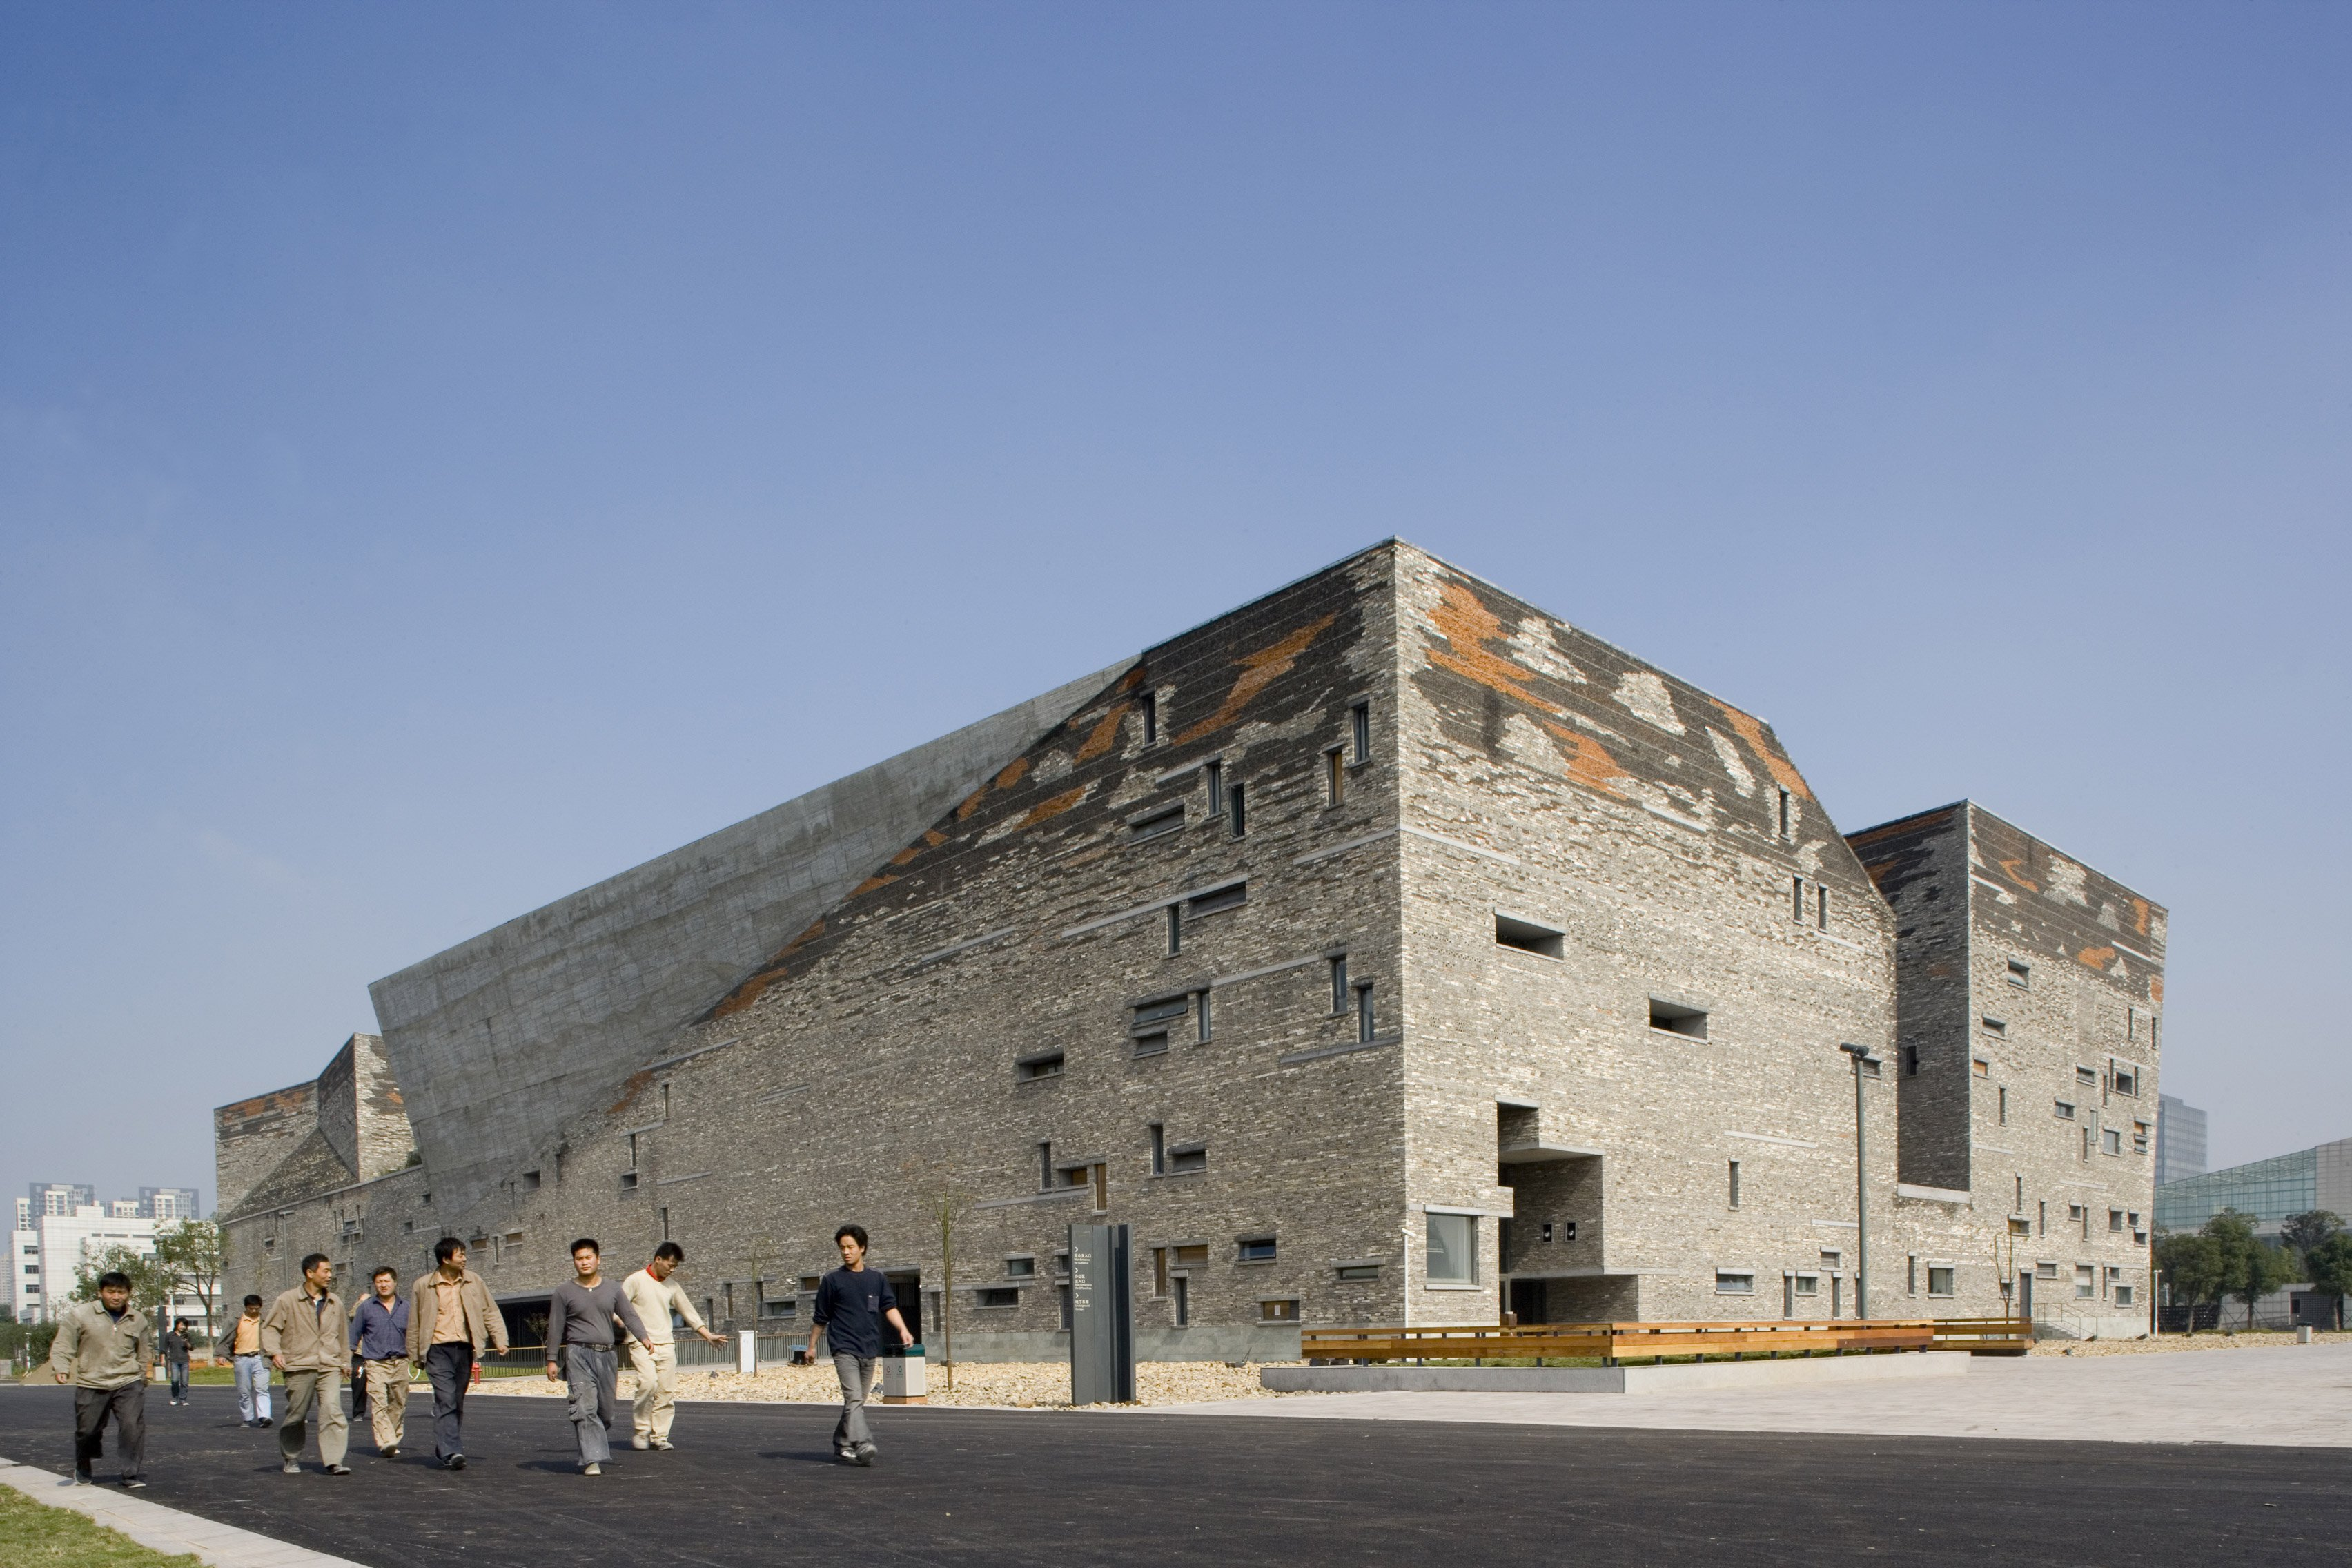 Video wang shu on amateur architecture studio 39 s ningbo museum for Architecture studio